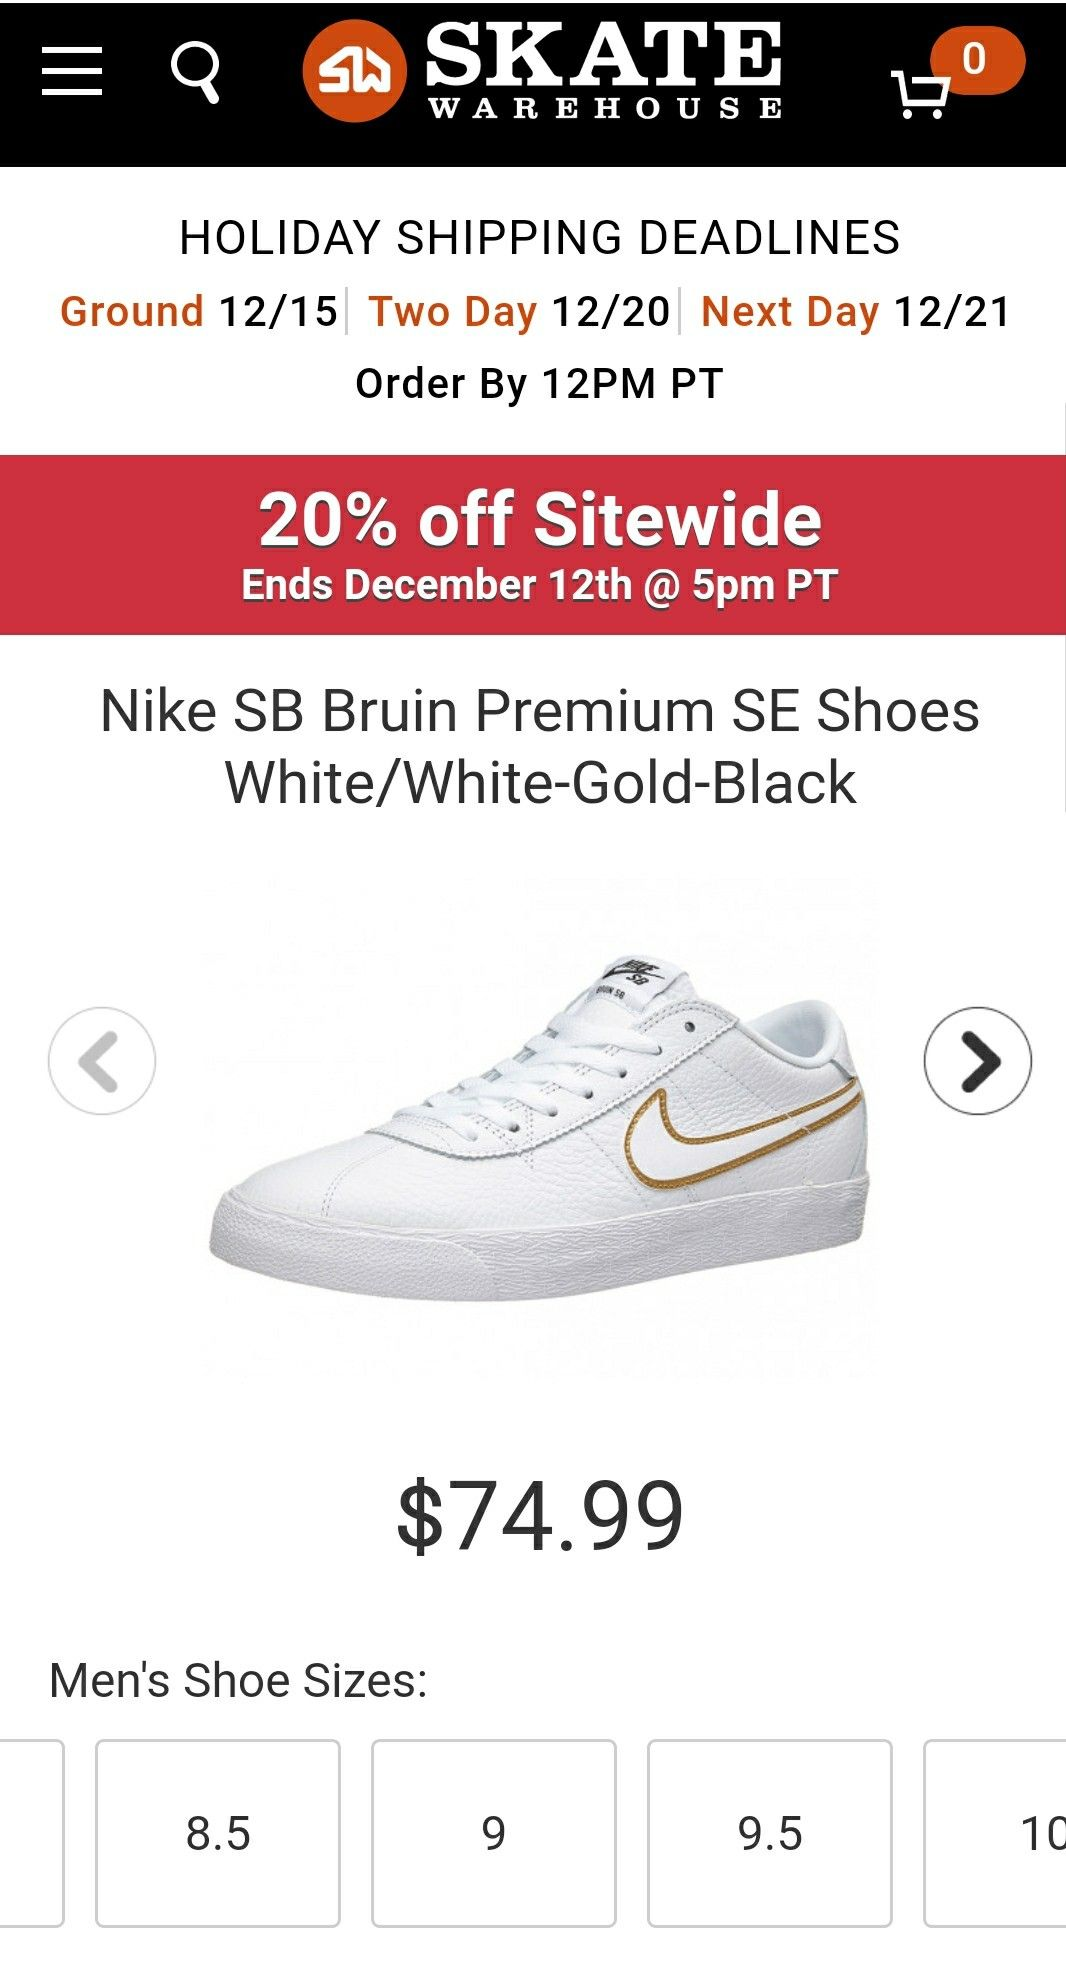 perfume Caña lapso  Skatewarehouse.com Nike sb bruin premium white/gold | Men shoes size, Nike  sb, Shoes mens